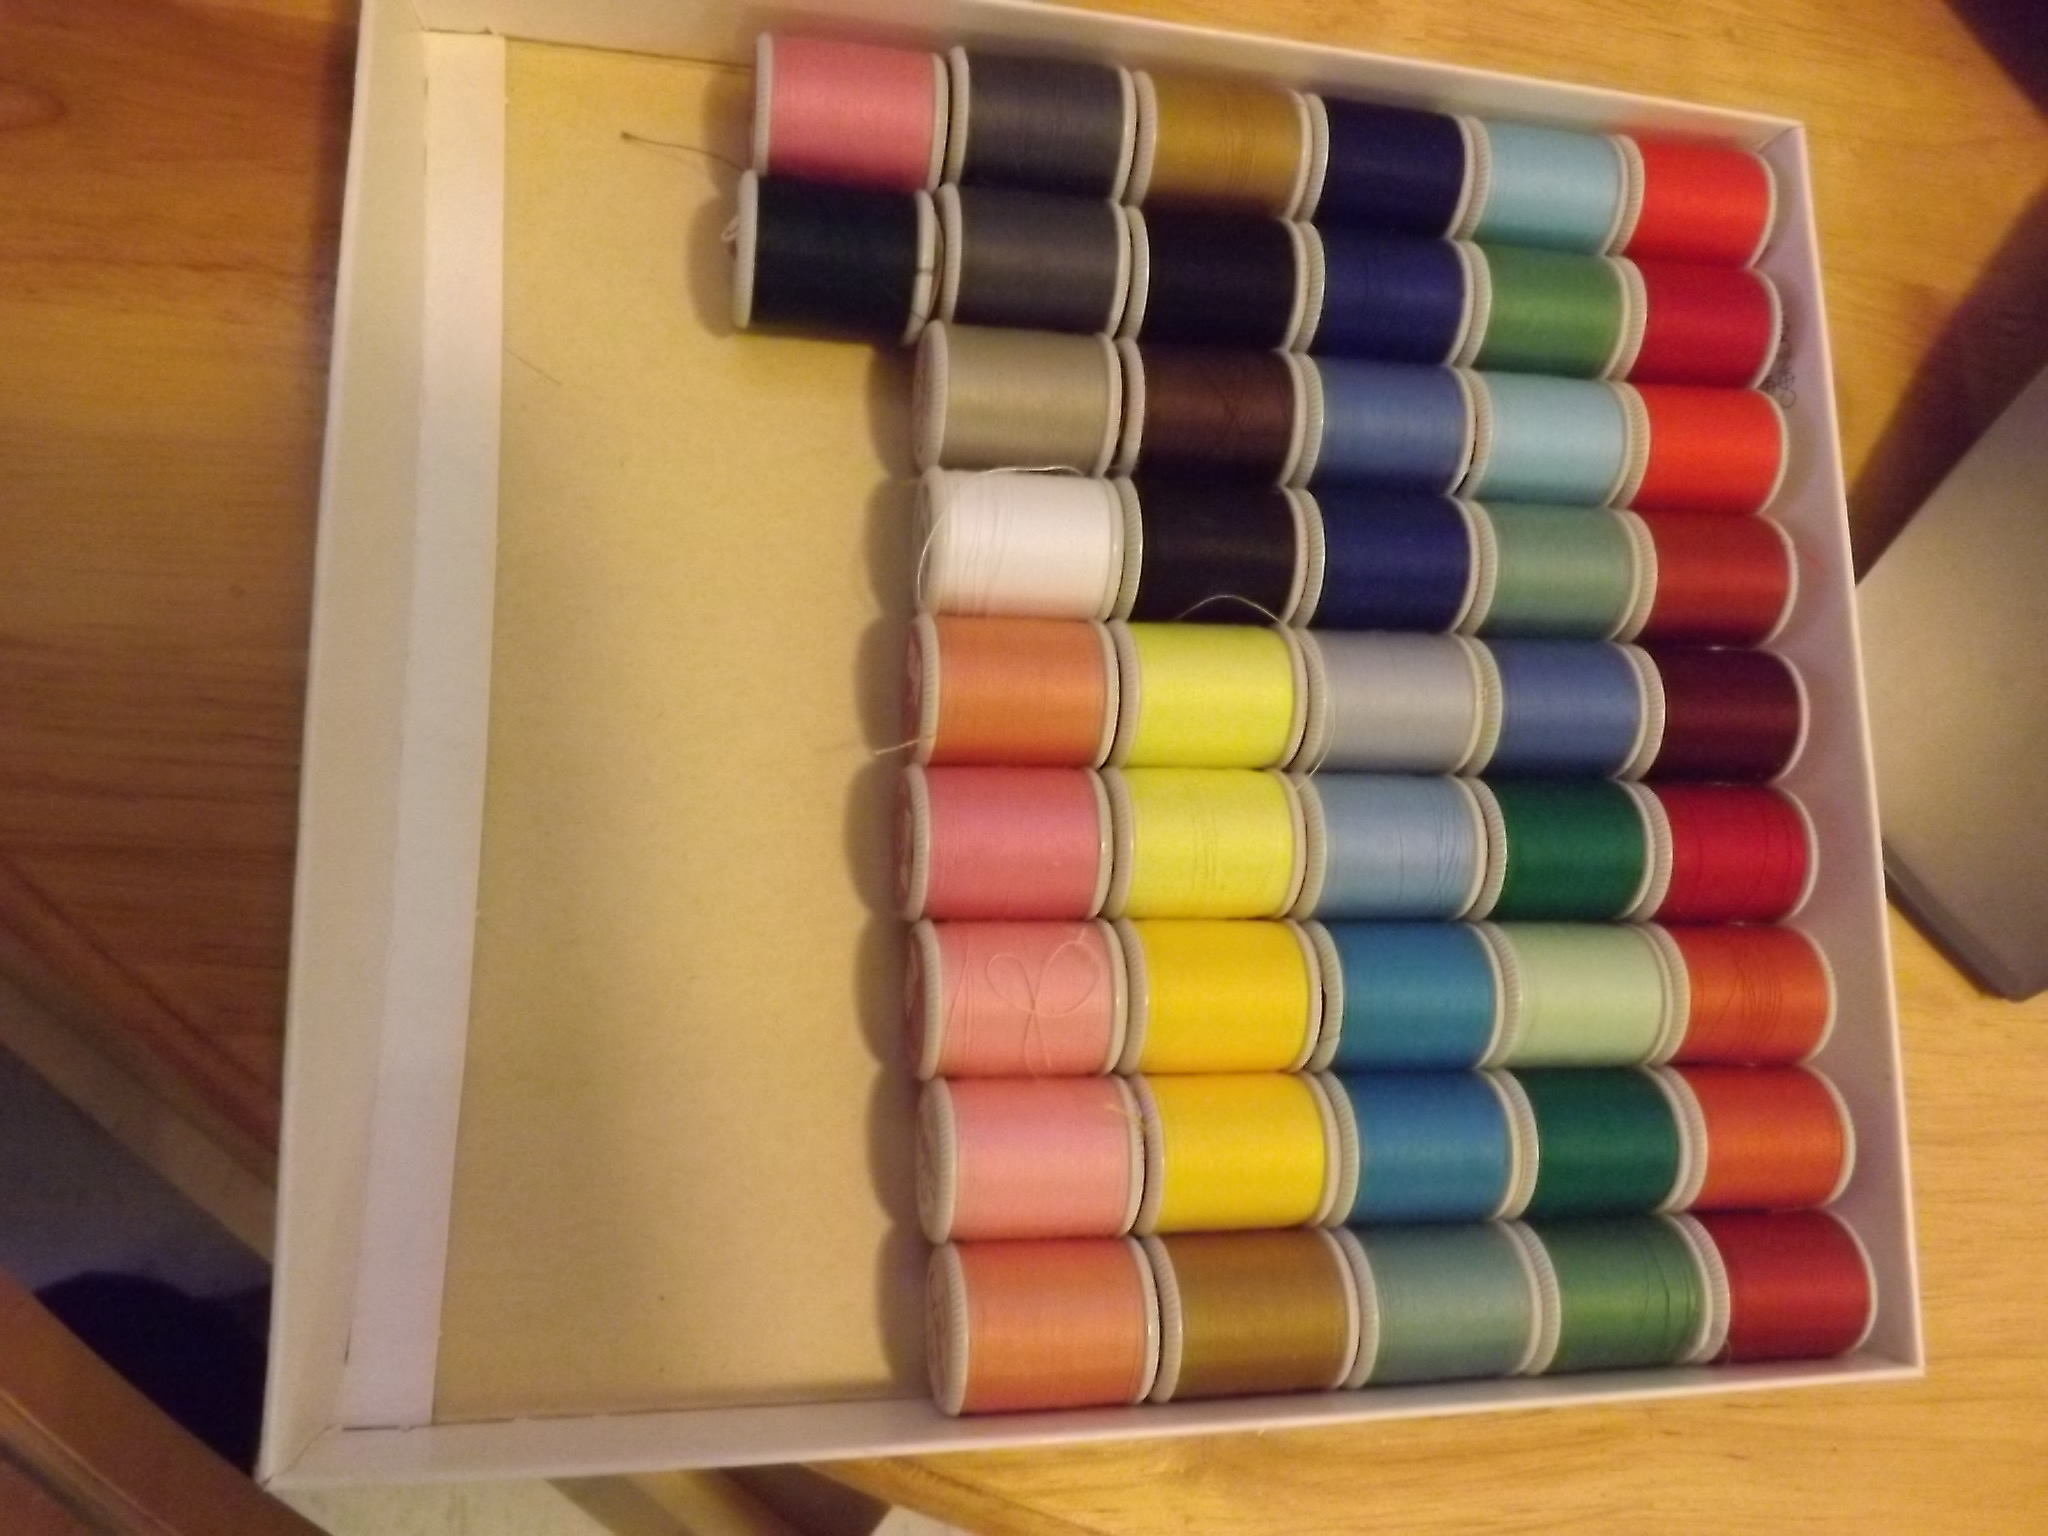 spools of different coloured thread in a box